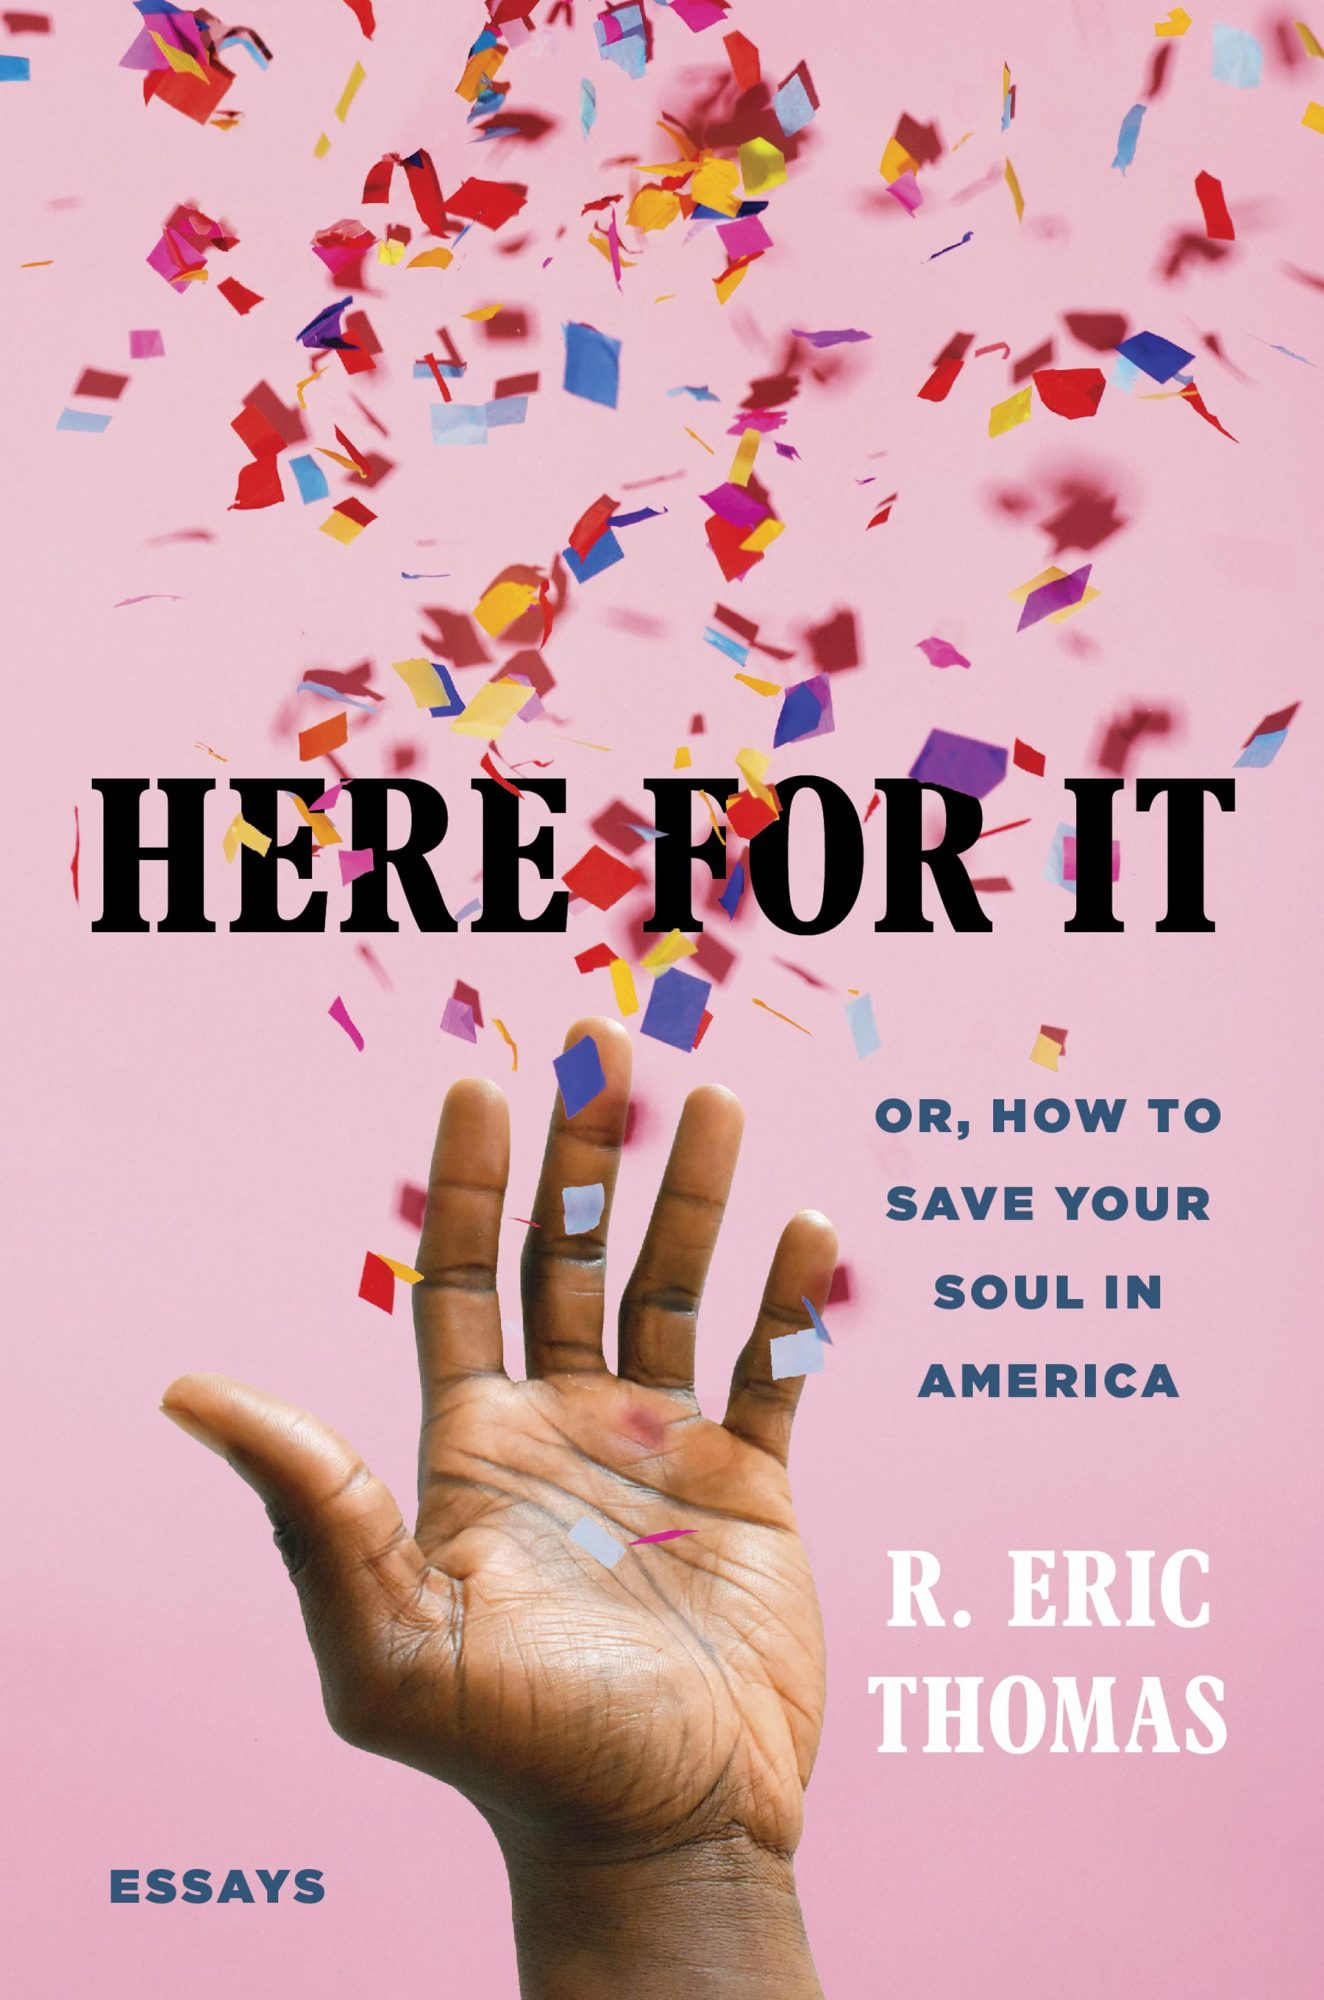 Here for It by R. Eric Thomas